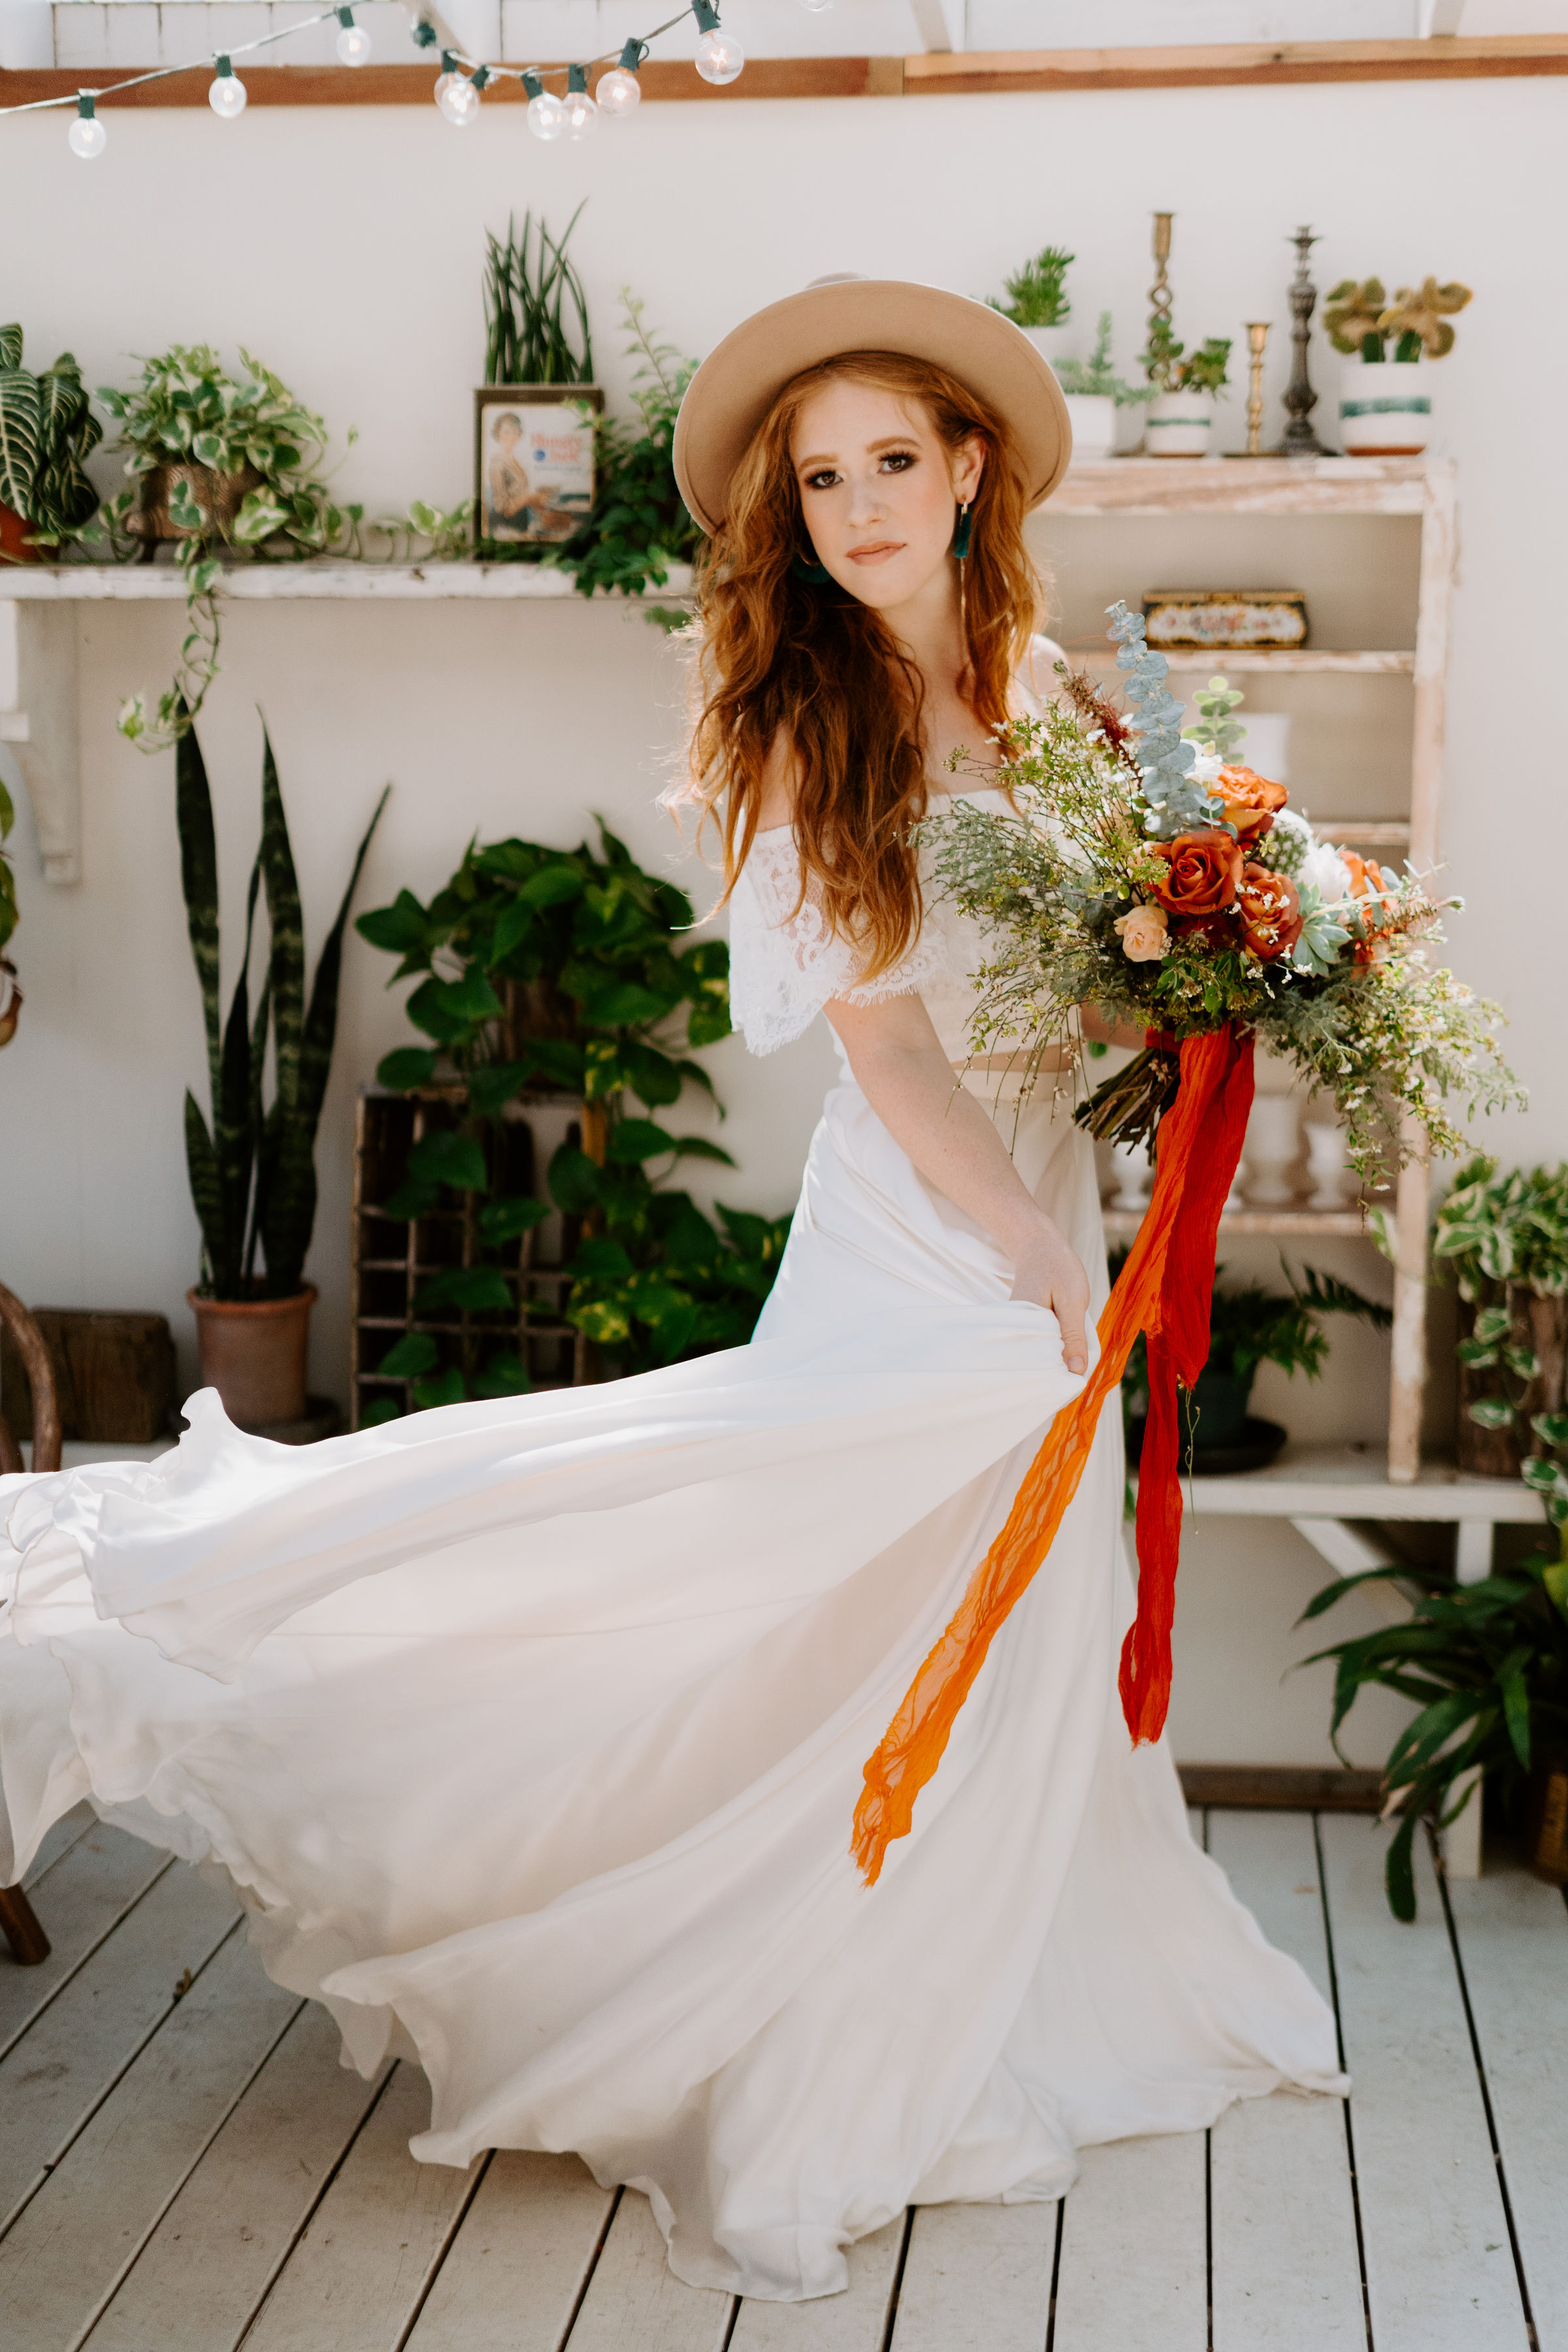 house-of-dirt-dallas-elopement-sydney-and-ryan-photography-13.jpg